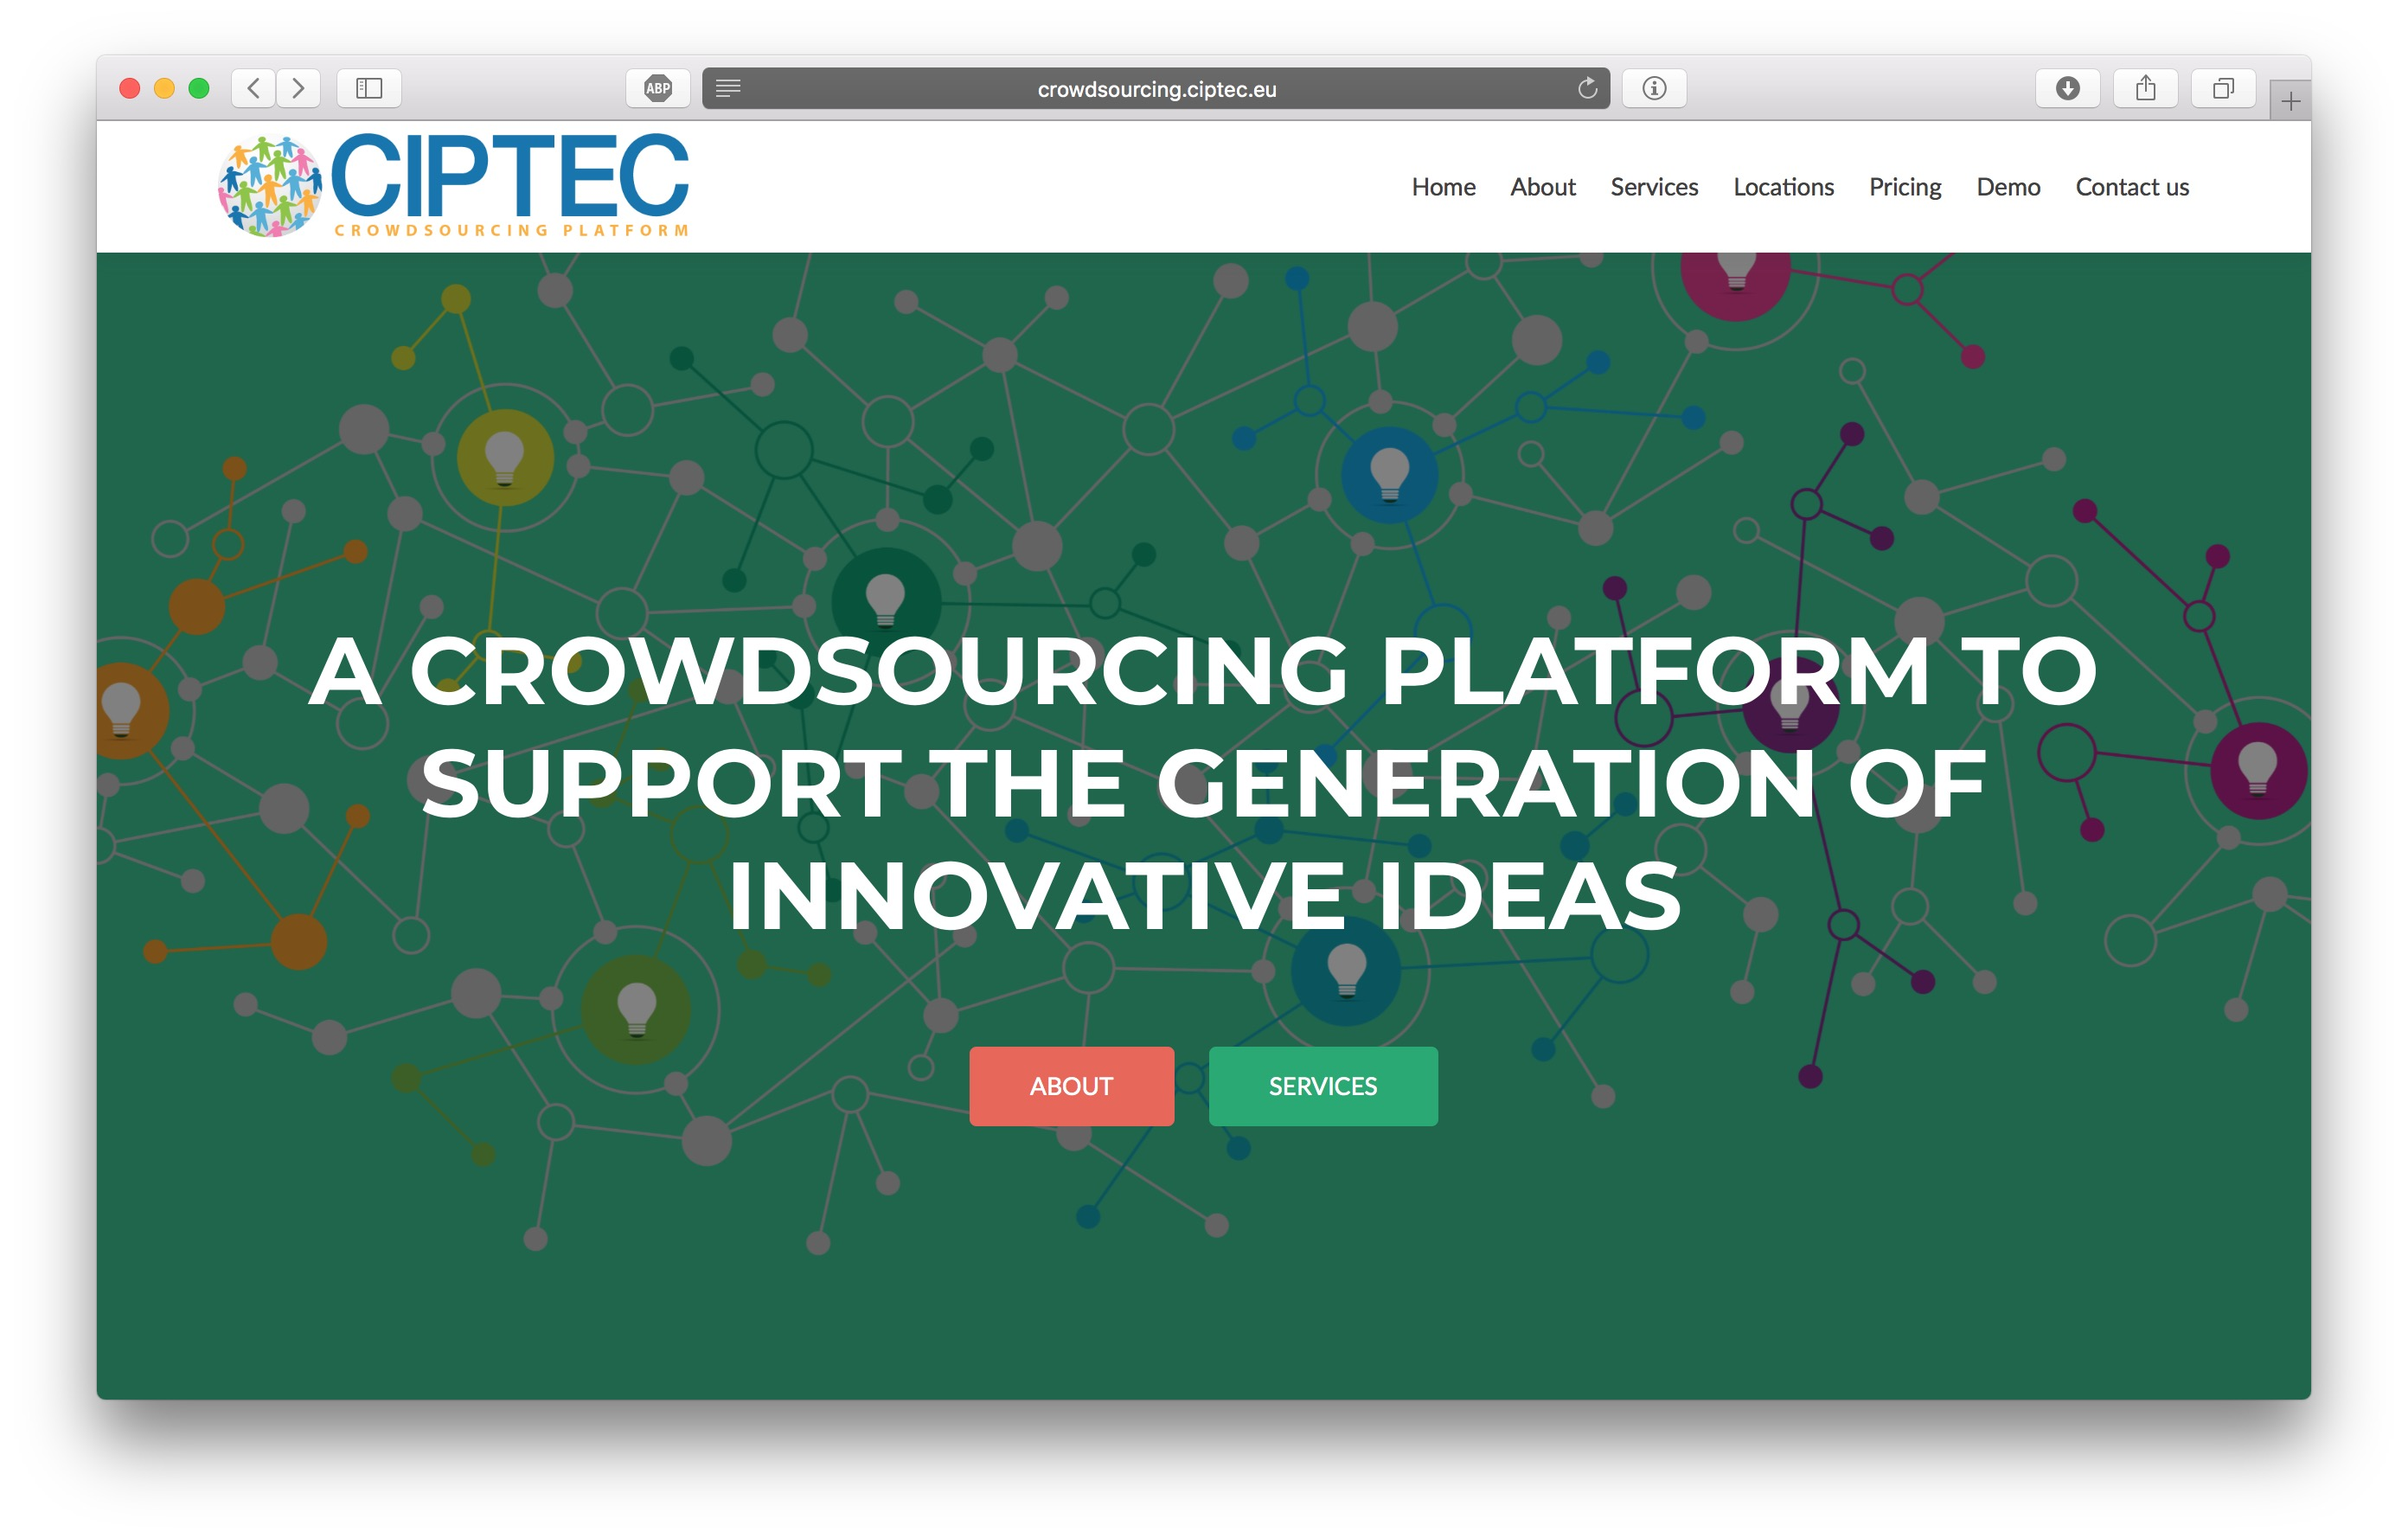 CIPTEC_crowdsourcing